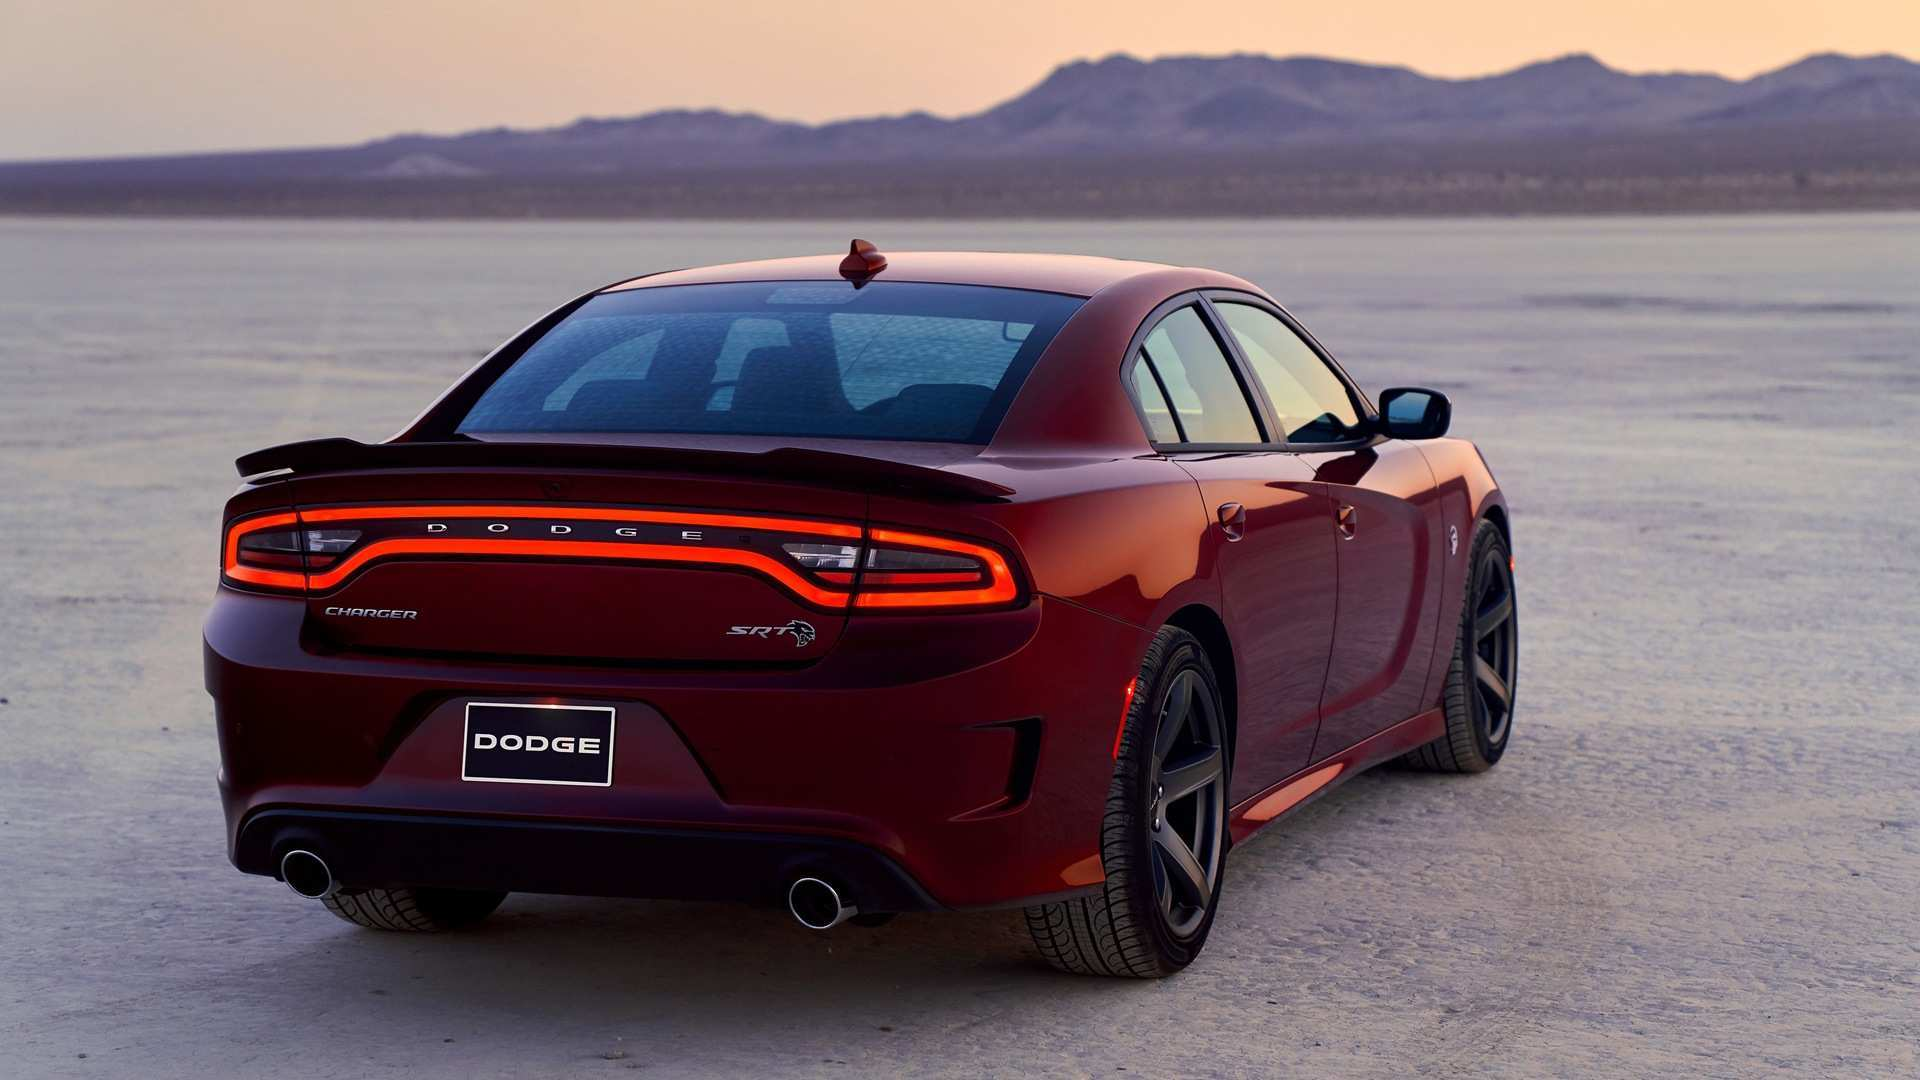 39 All New 2020 Dodge Charger Srt History